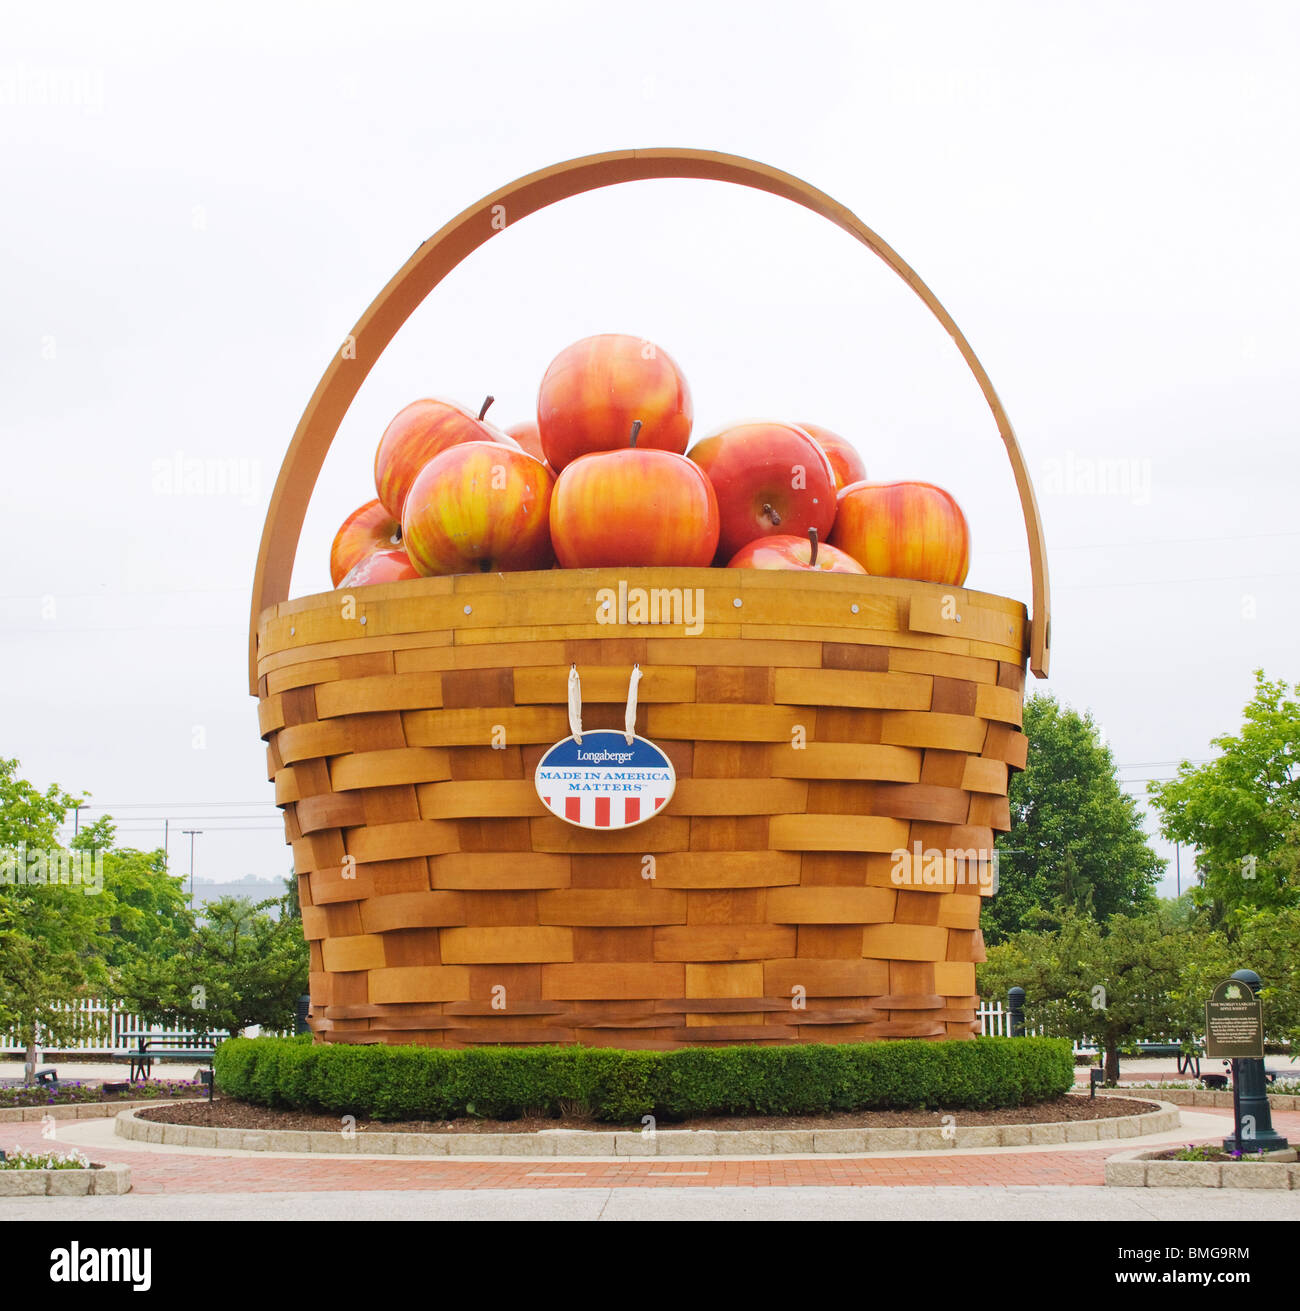 Worlds Largest Basket of Apples in Frazeysburg Ohio Stock Photo - Alamy